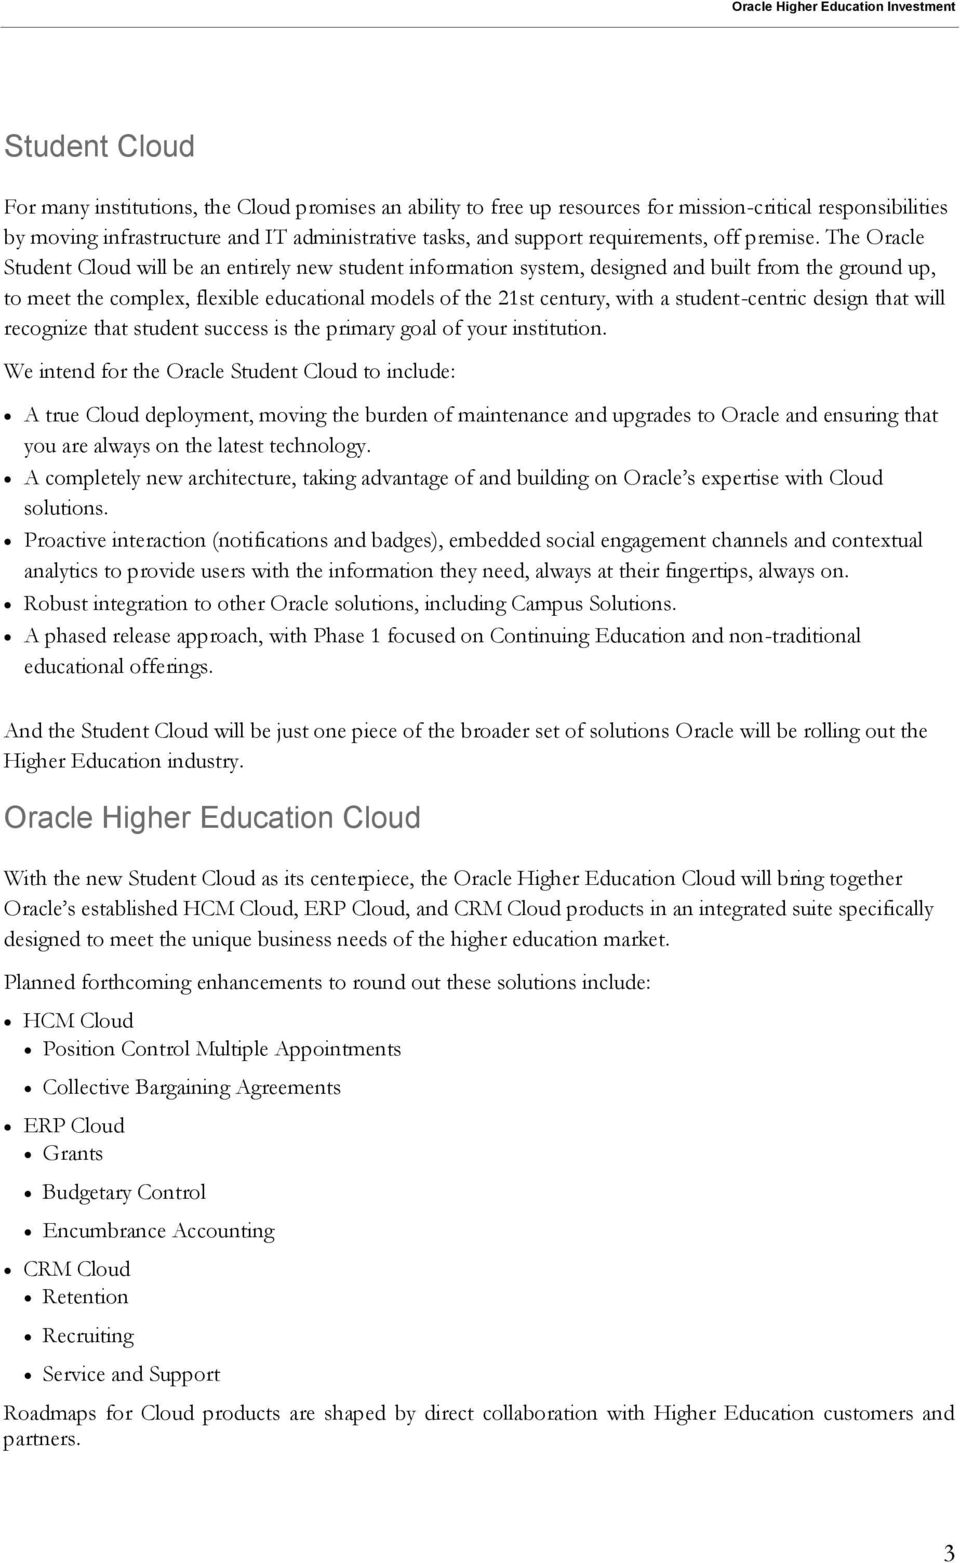 The Oracle Student Cloud will be an entirely new student information system, designed and built from the ground up, to meet the complex, flexible educational models of the 21st century, with a